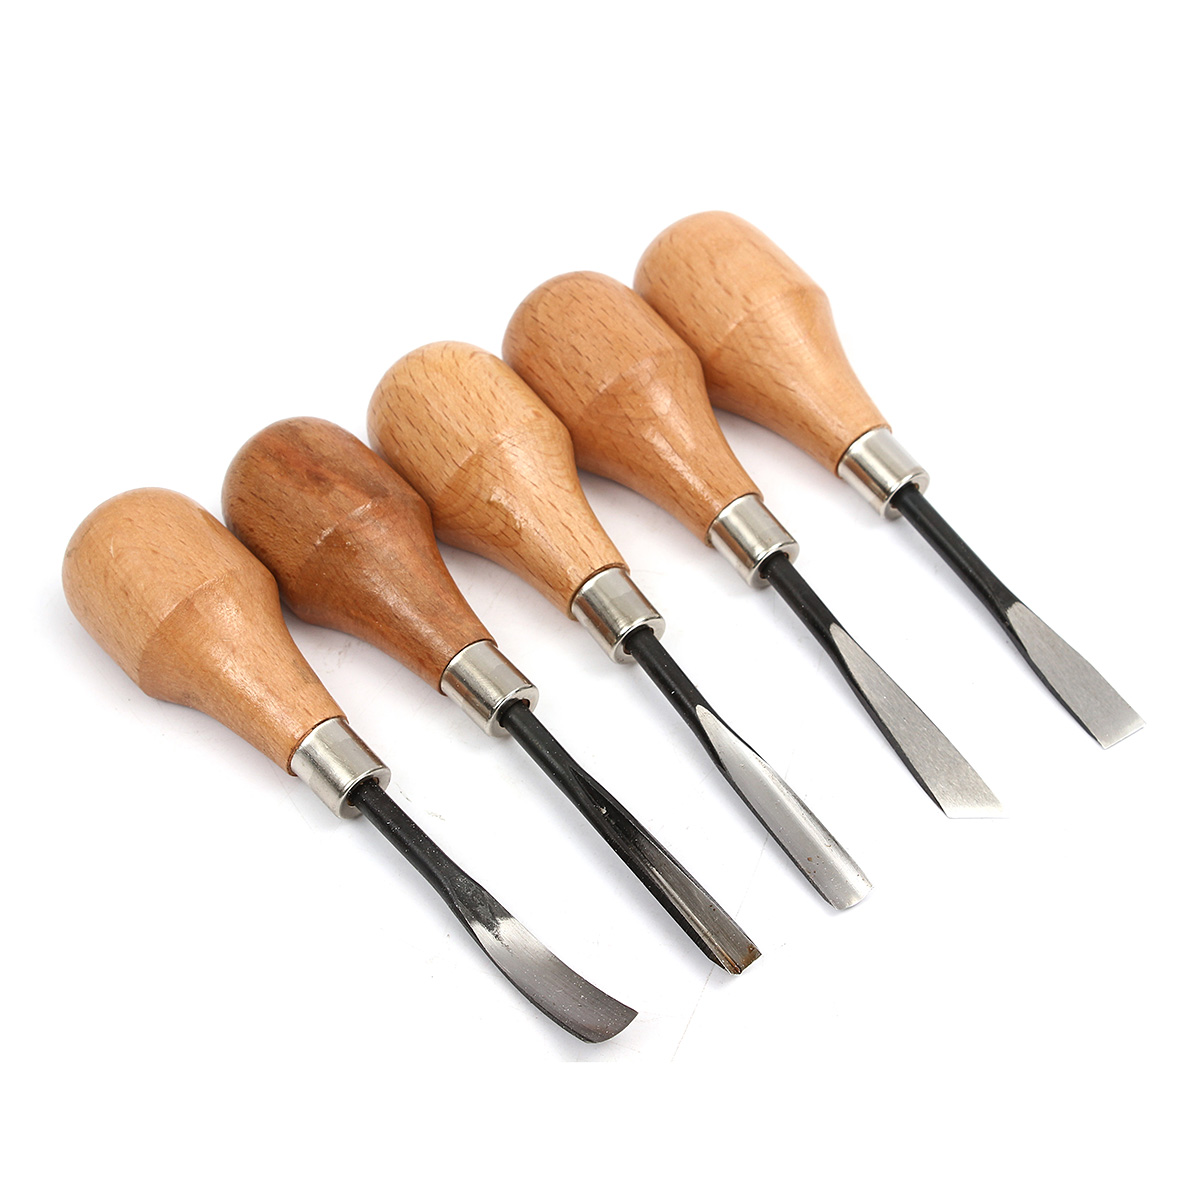 Pcs set hand wood carving chisels cutter diy tool for